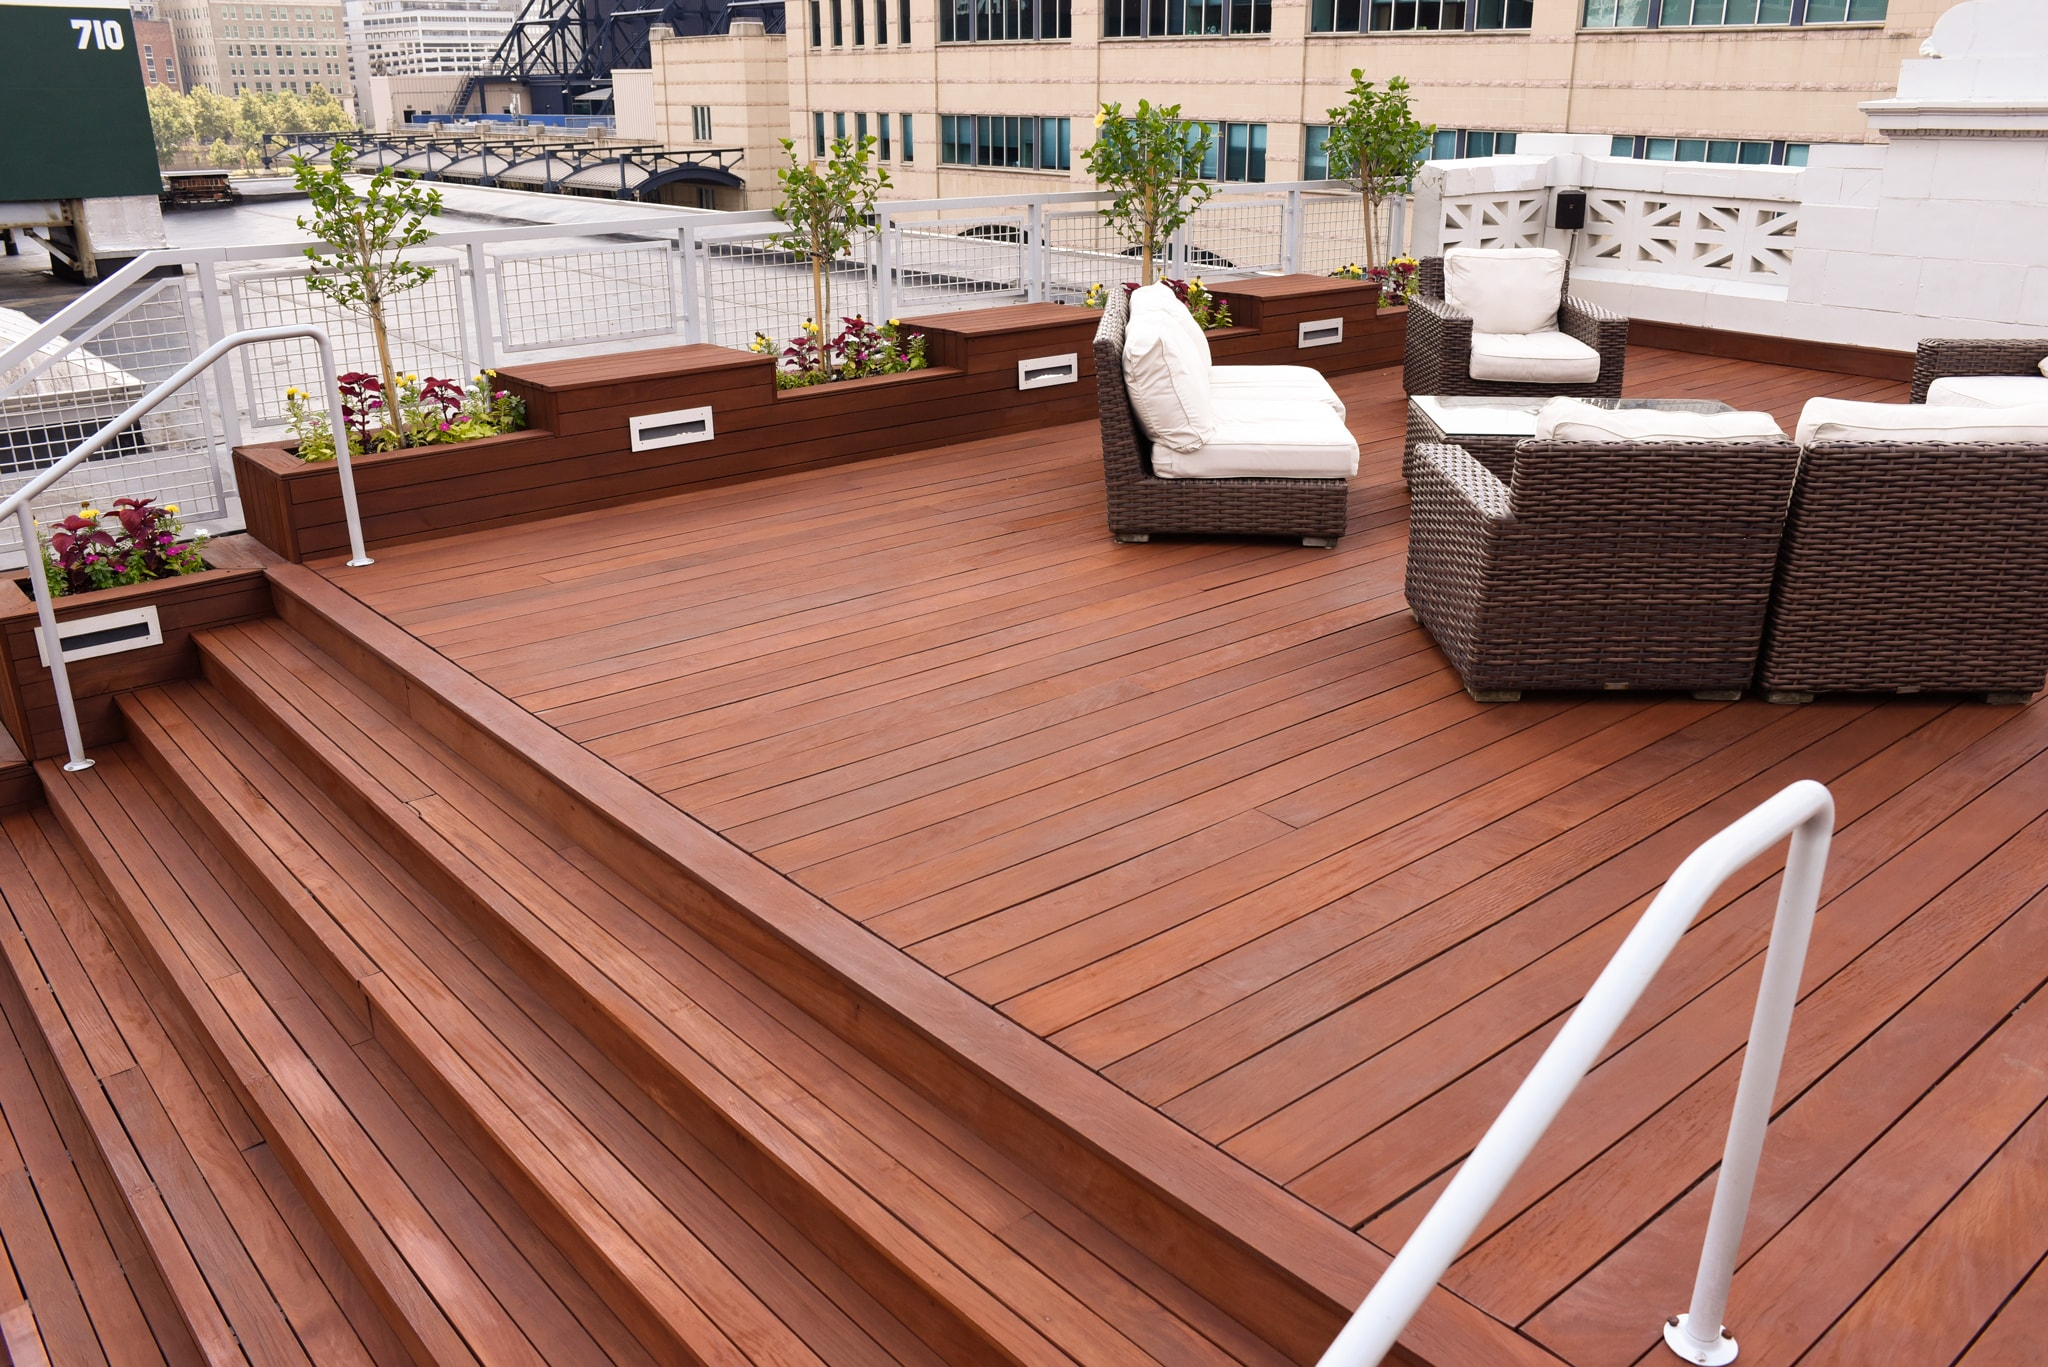 5 Easy Steps to Staining Your Deck Like a Pro